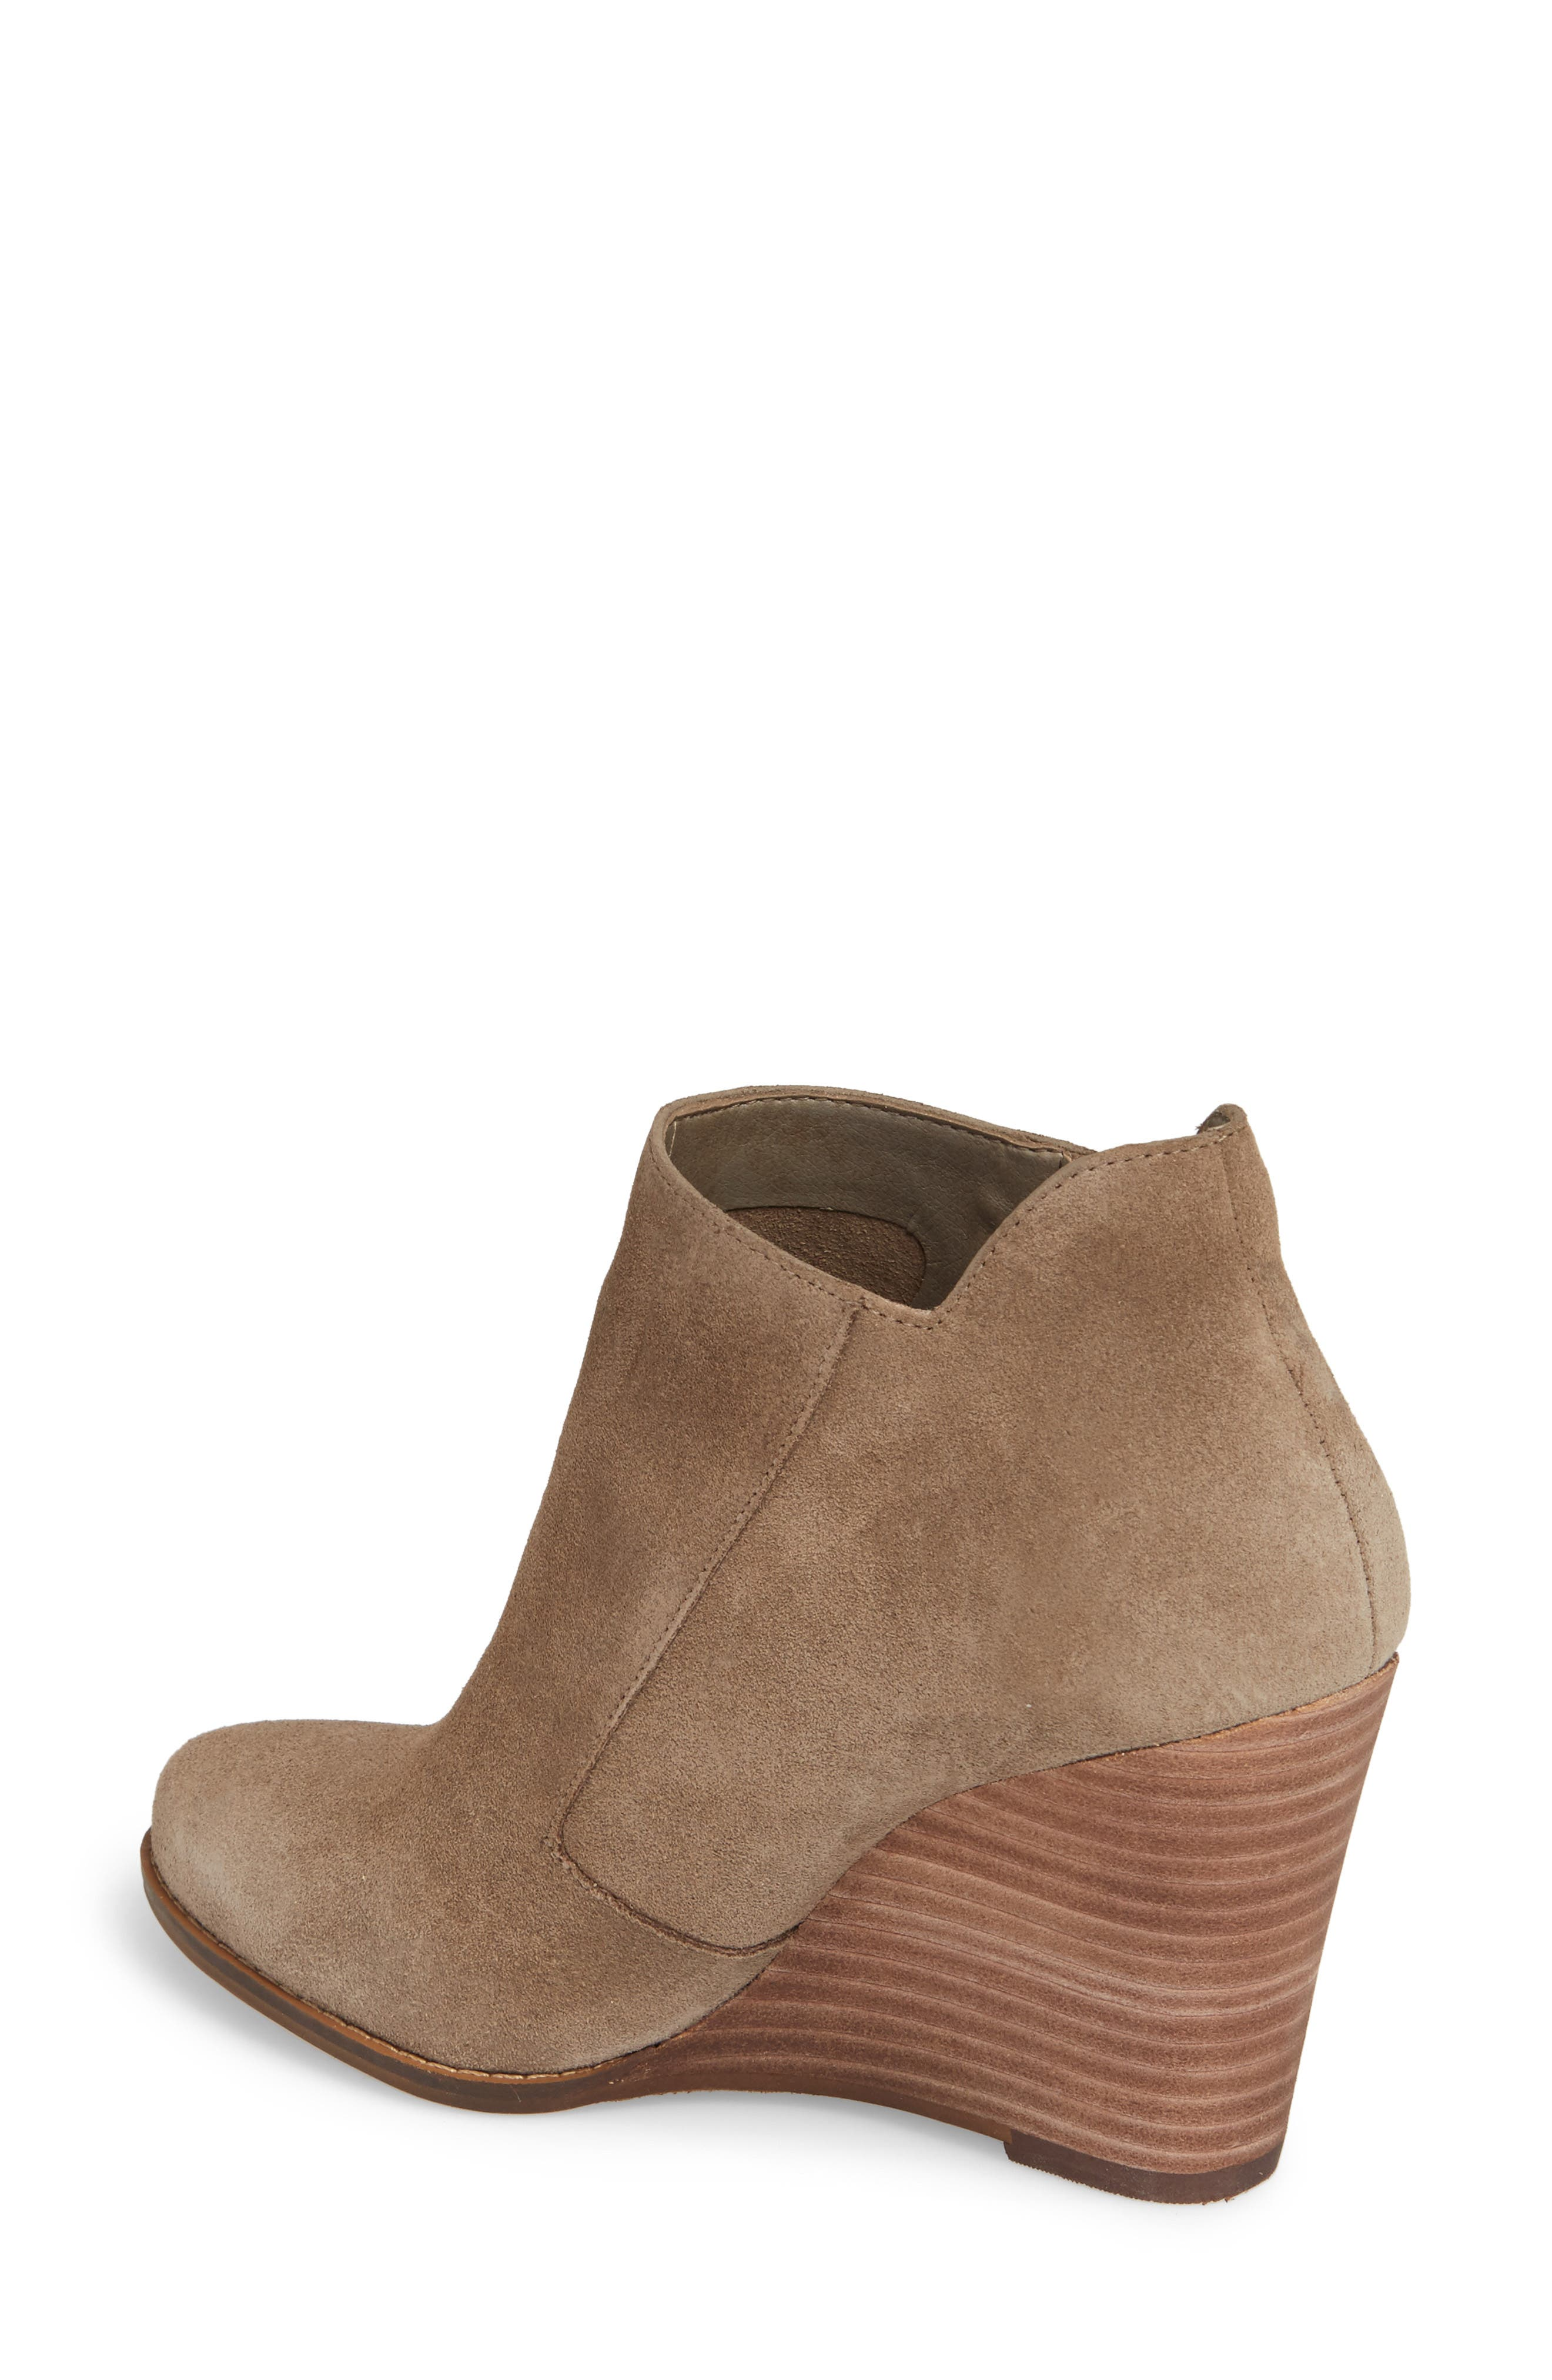 Carnivela Wedge Bootie,                             Alternate thumbnail 2, color,                             Greyhound Suede